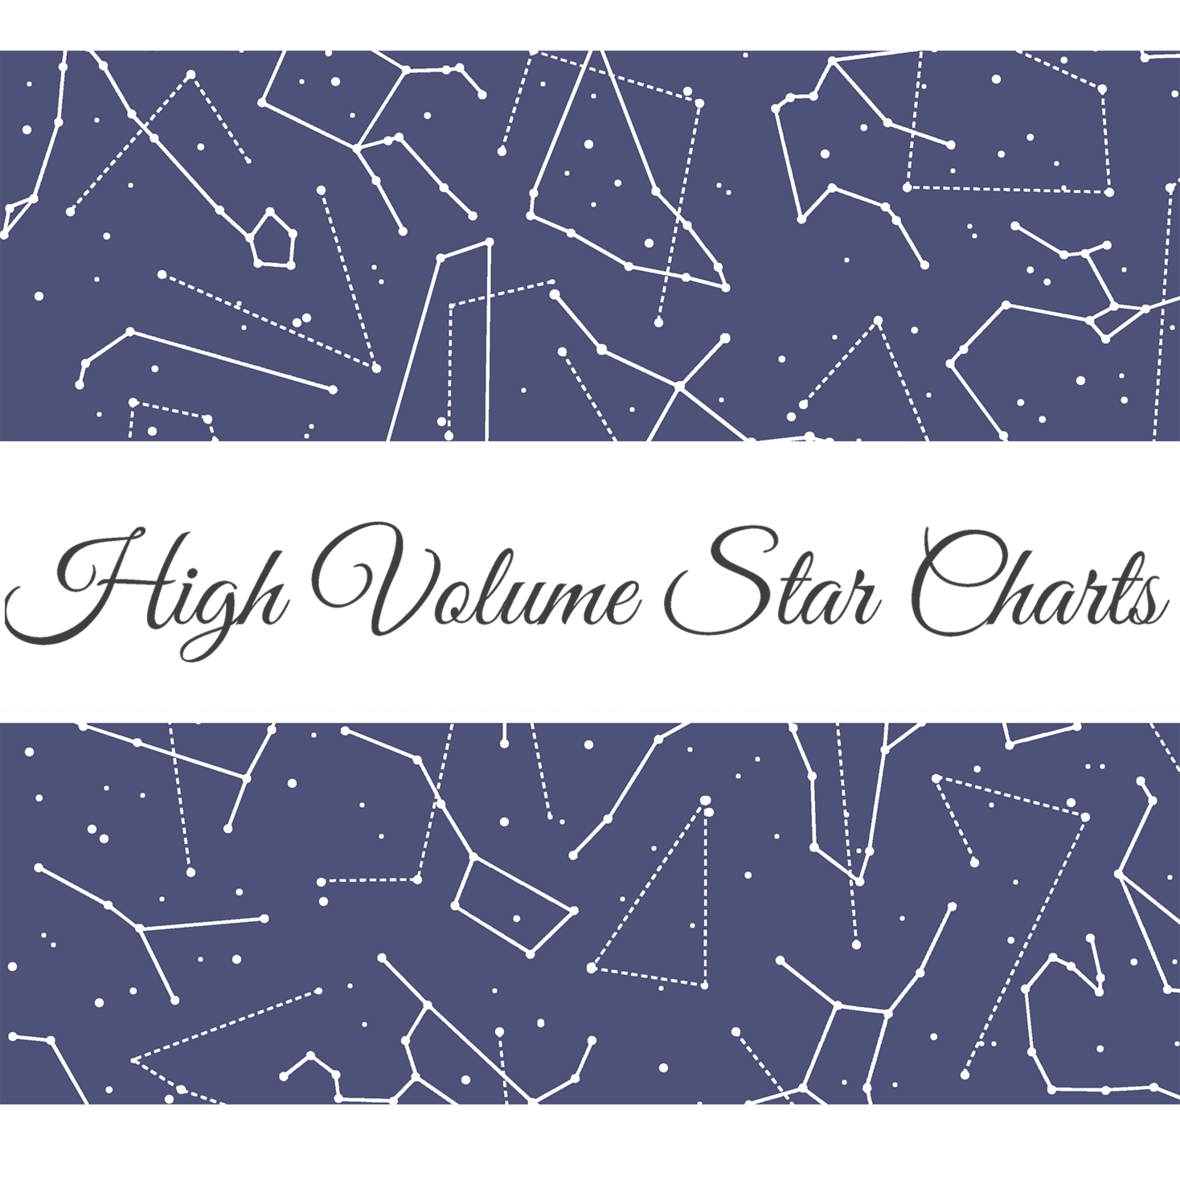 Promo Star Charts High